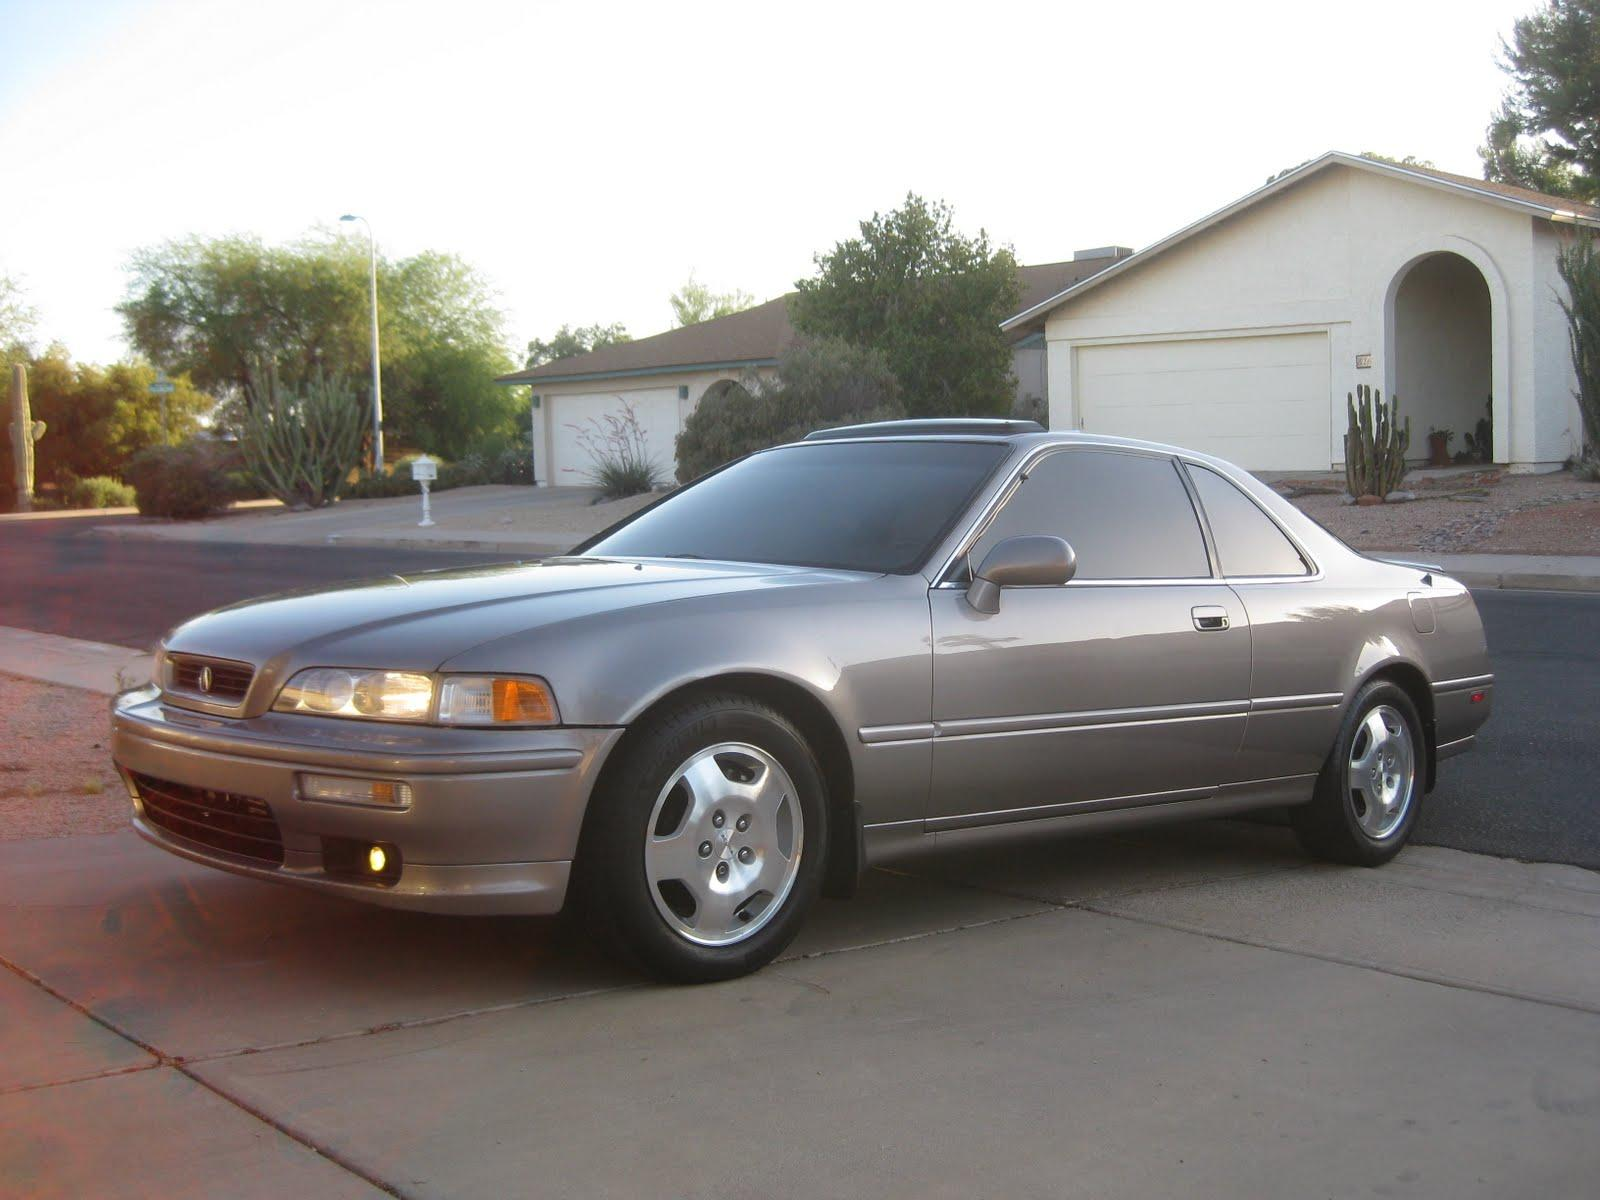 1994 Acura Legend Information And Photos Zombiedrive